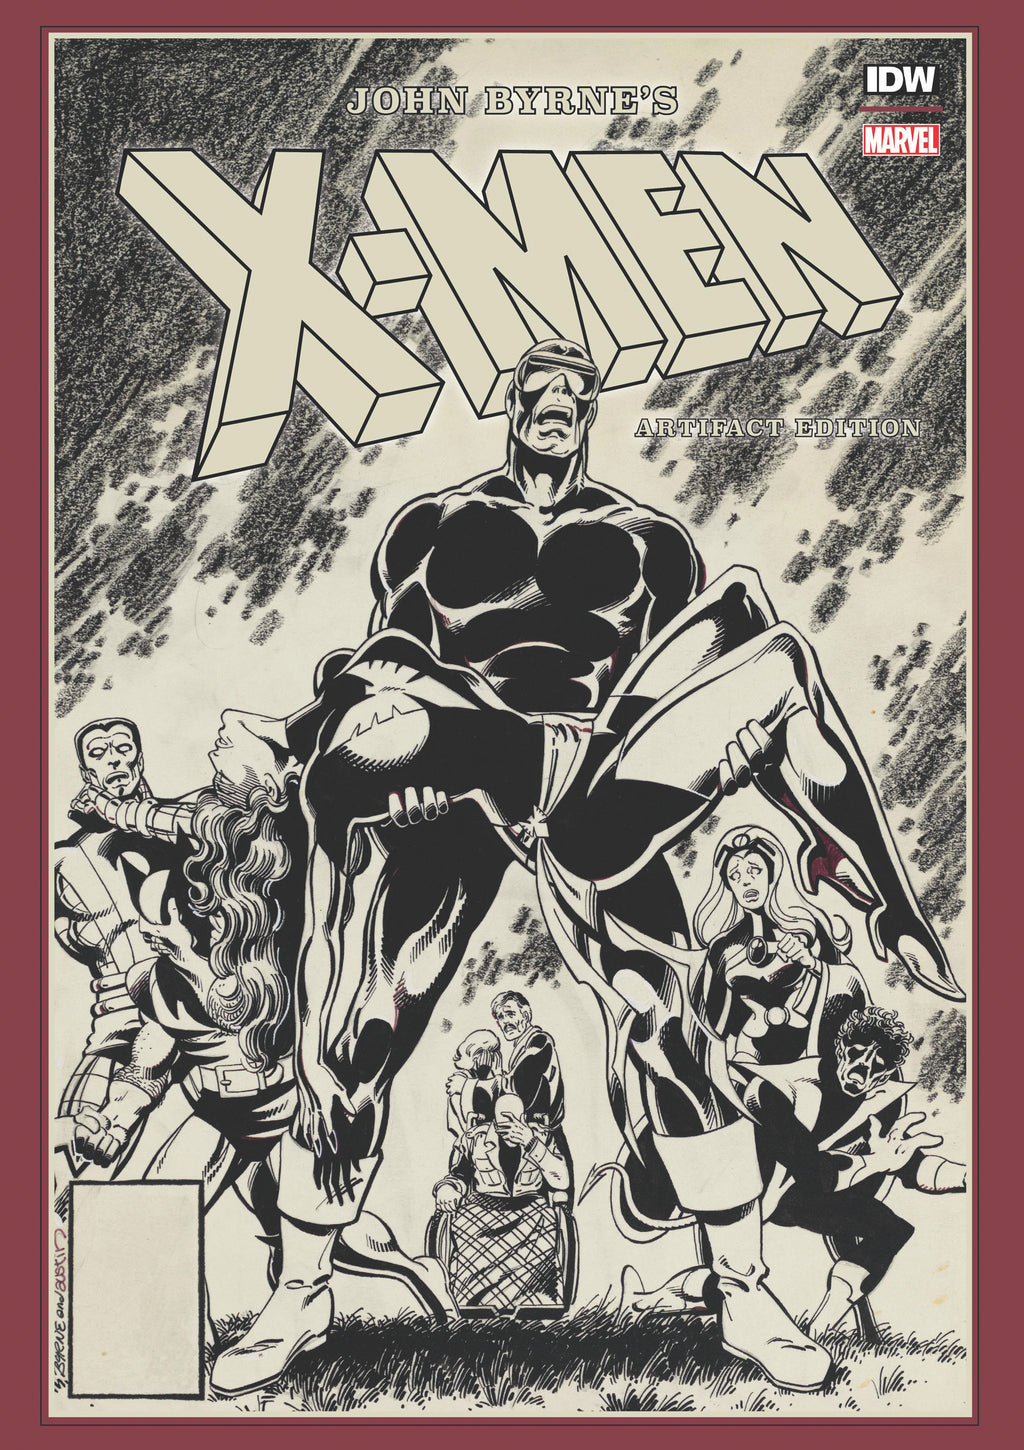 X-Men artifact edition di John Byrne's-IDW PUBLISHING- nuvolosofumetti.